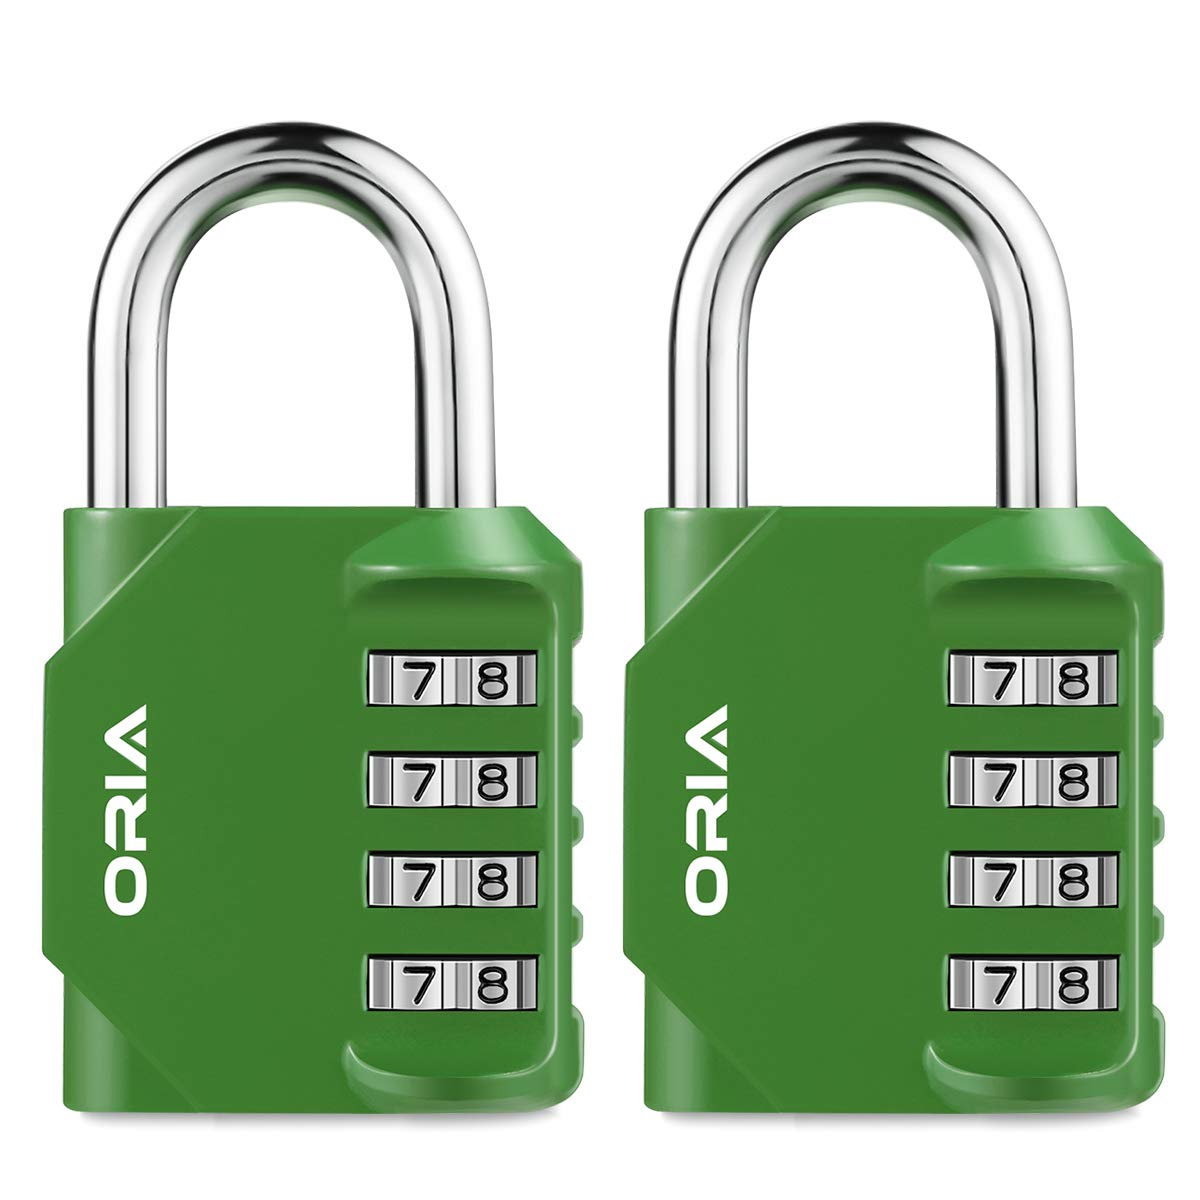 Hasp Cabinet Toolbox Great Gift for Family or Friend ORIA Combination Locks Red Fence 2 Pack Padlocks for School,Gym /& Sports Locker 4-Digit Padlock Case